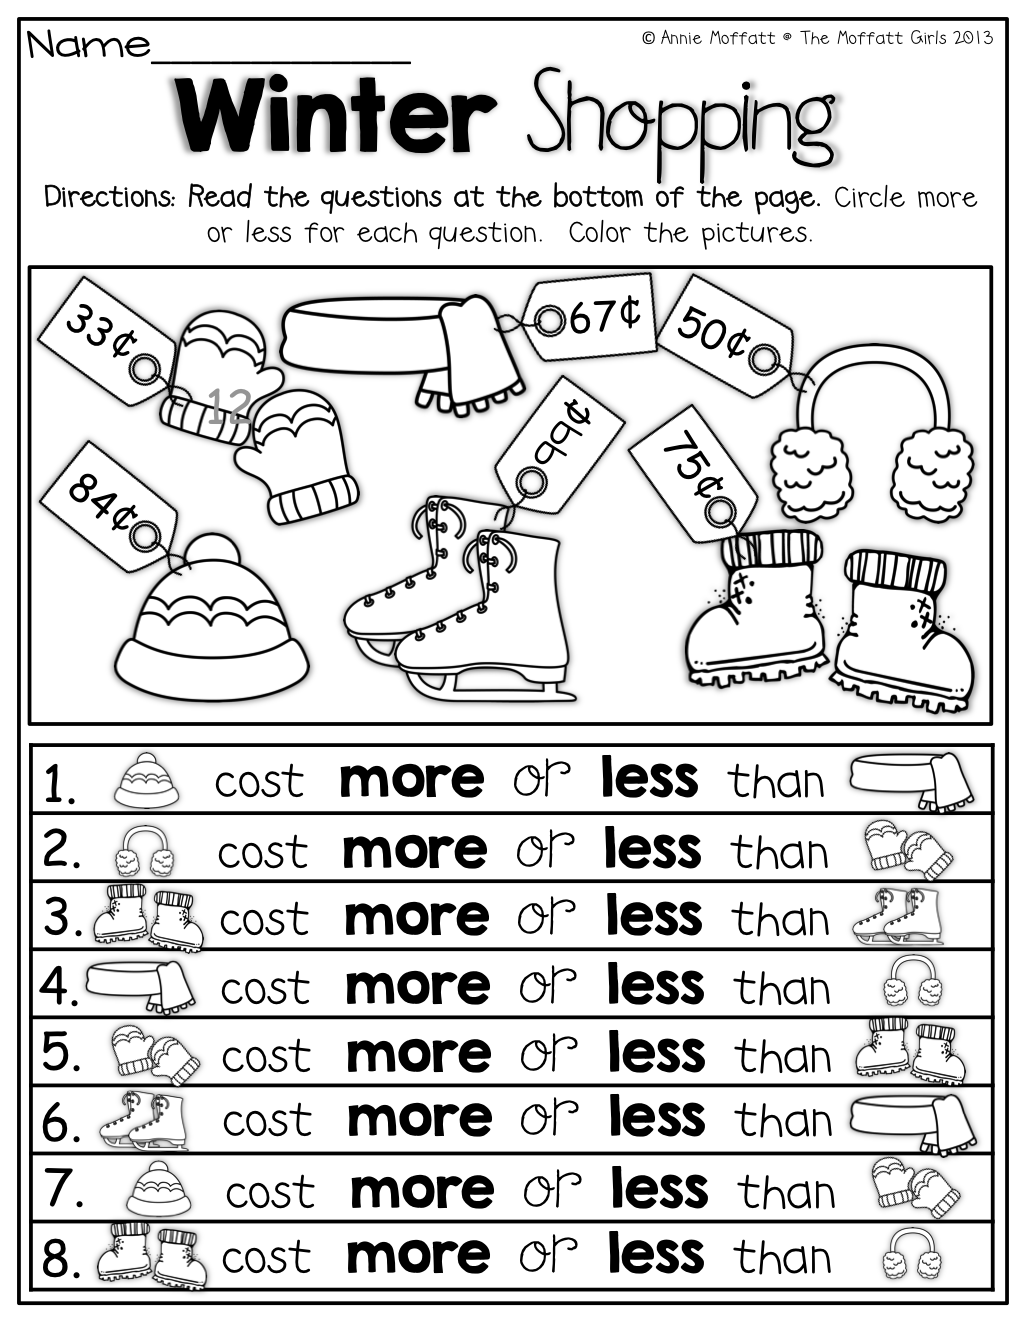 Spring Pronouns Worksheet